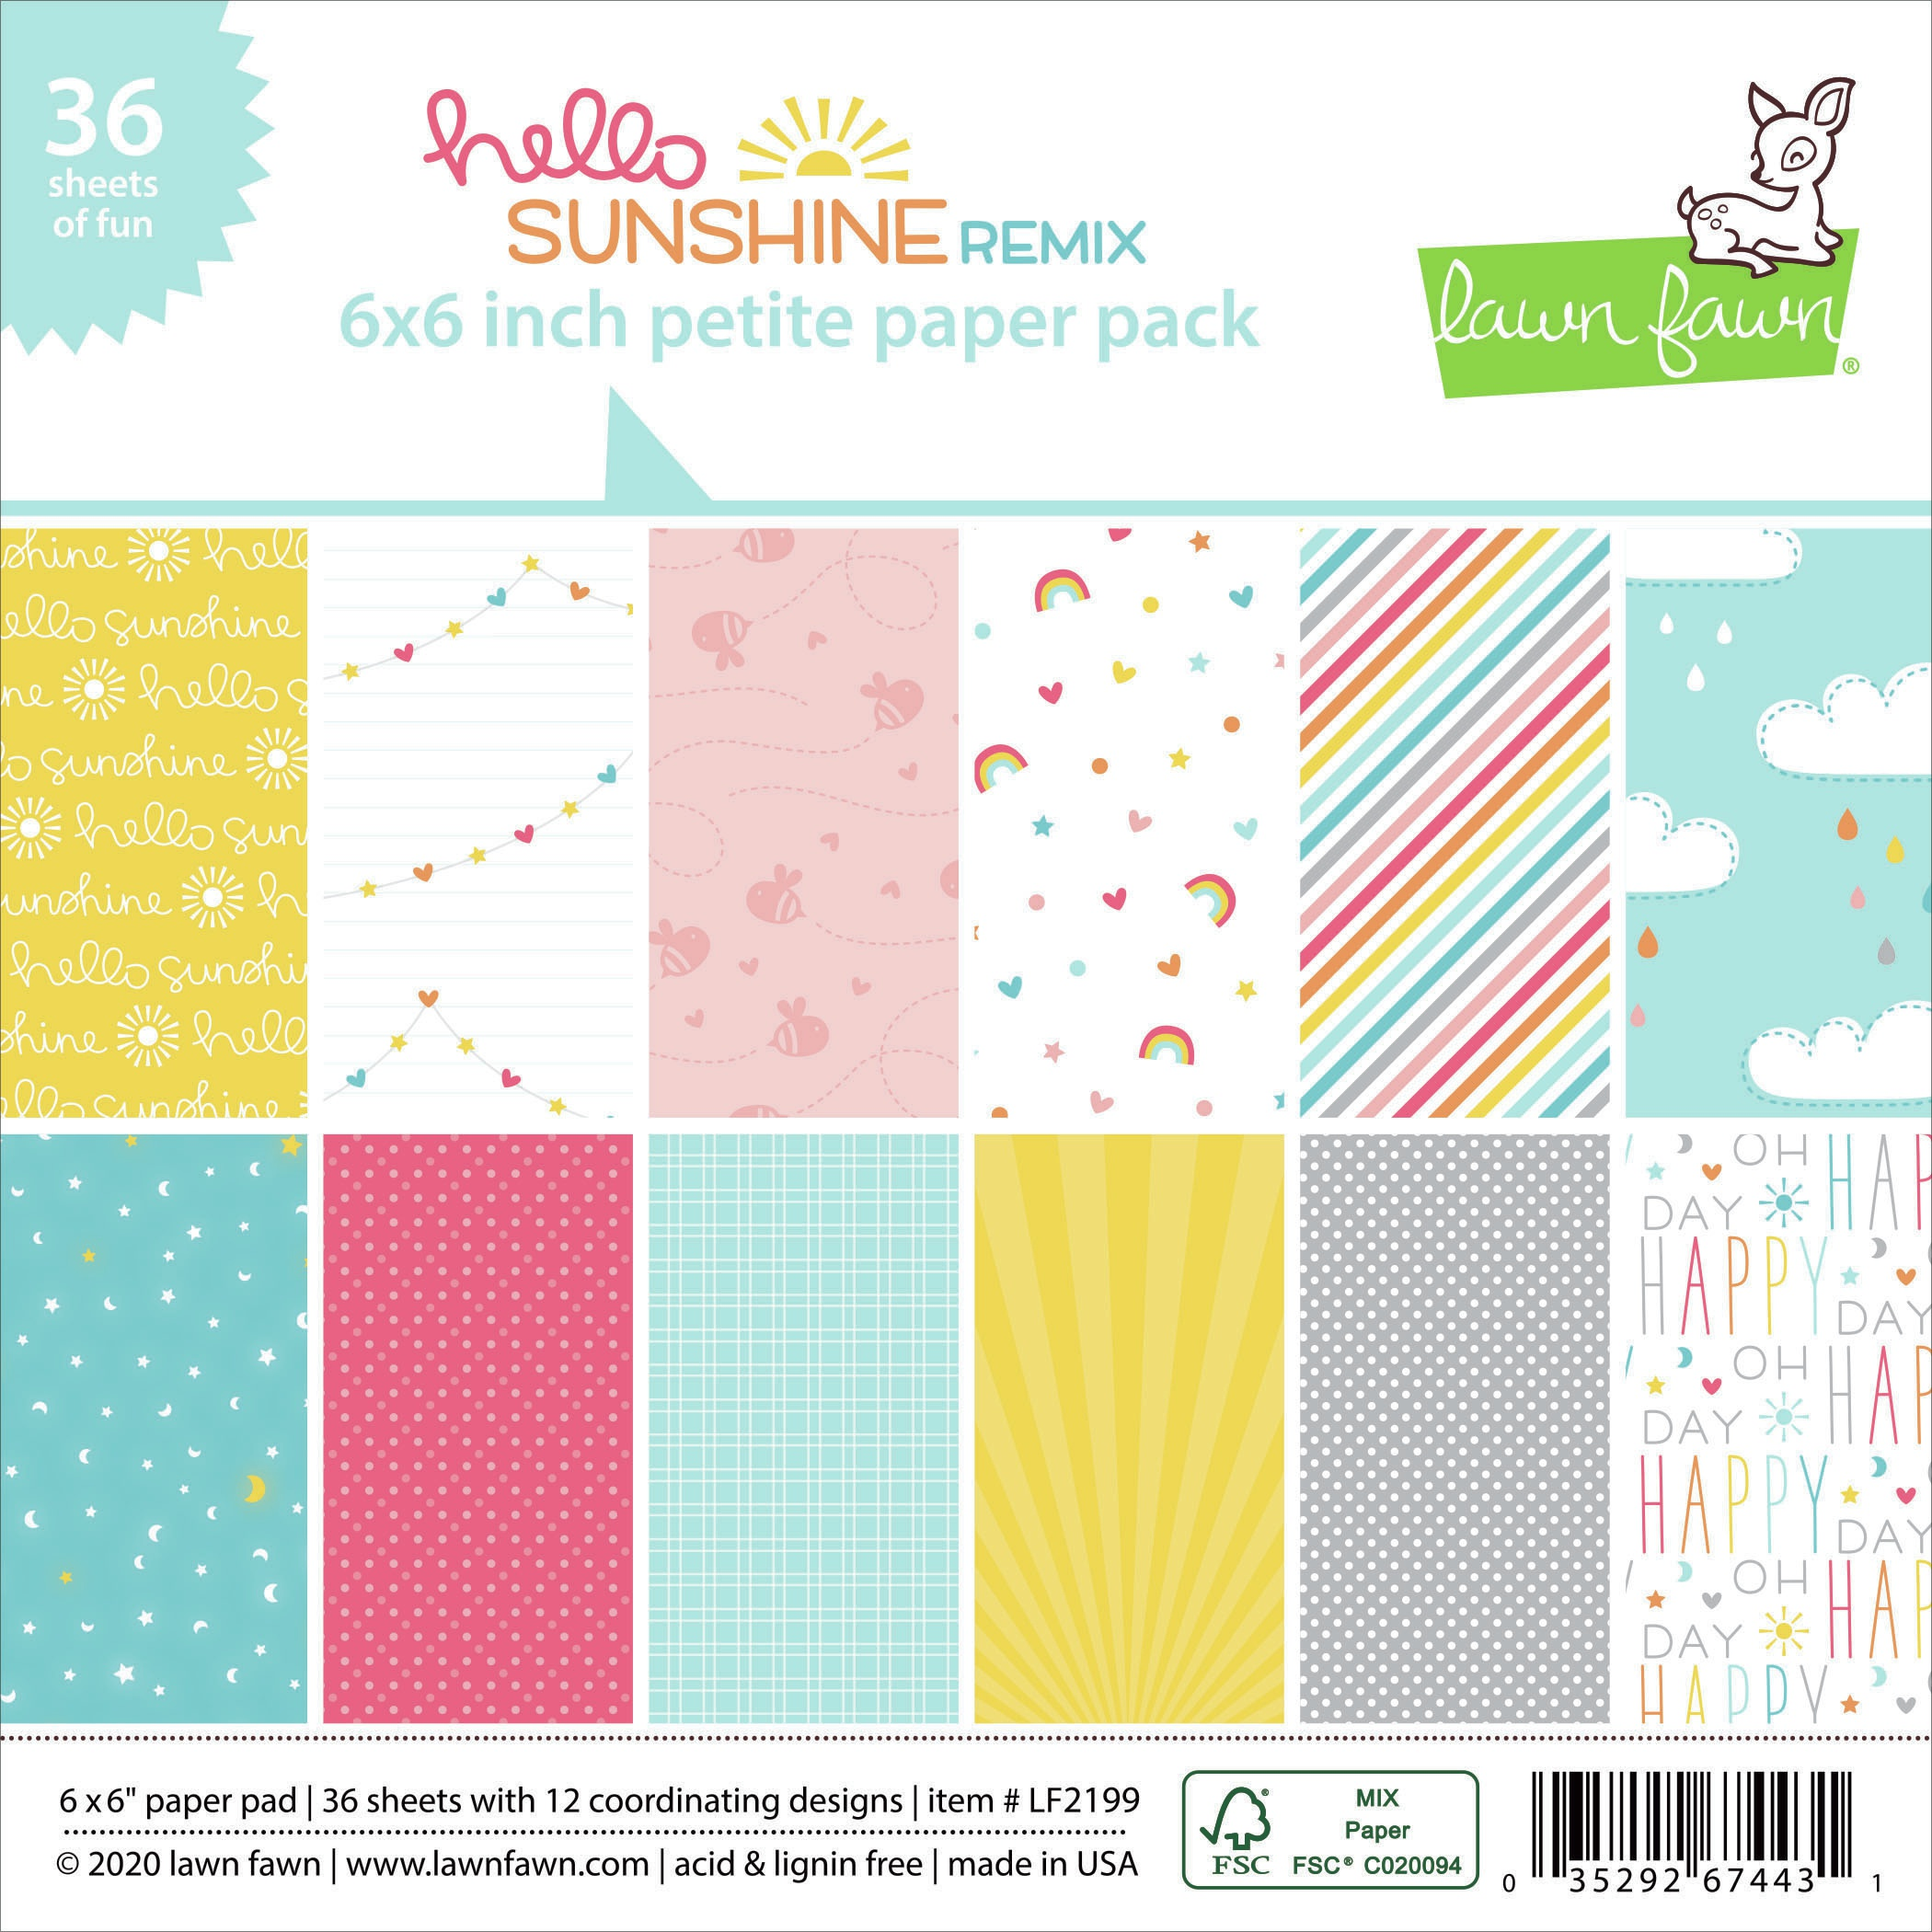 Lawn Fawn Single-Sided Petite Paper Pack 6X6 36/Pkg-Hello Sunshine Remix, 12 Designs/3 Each